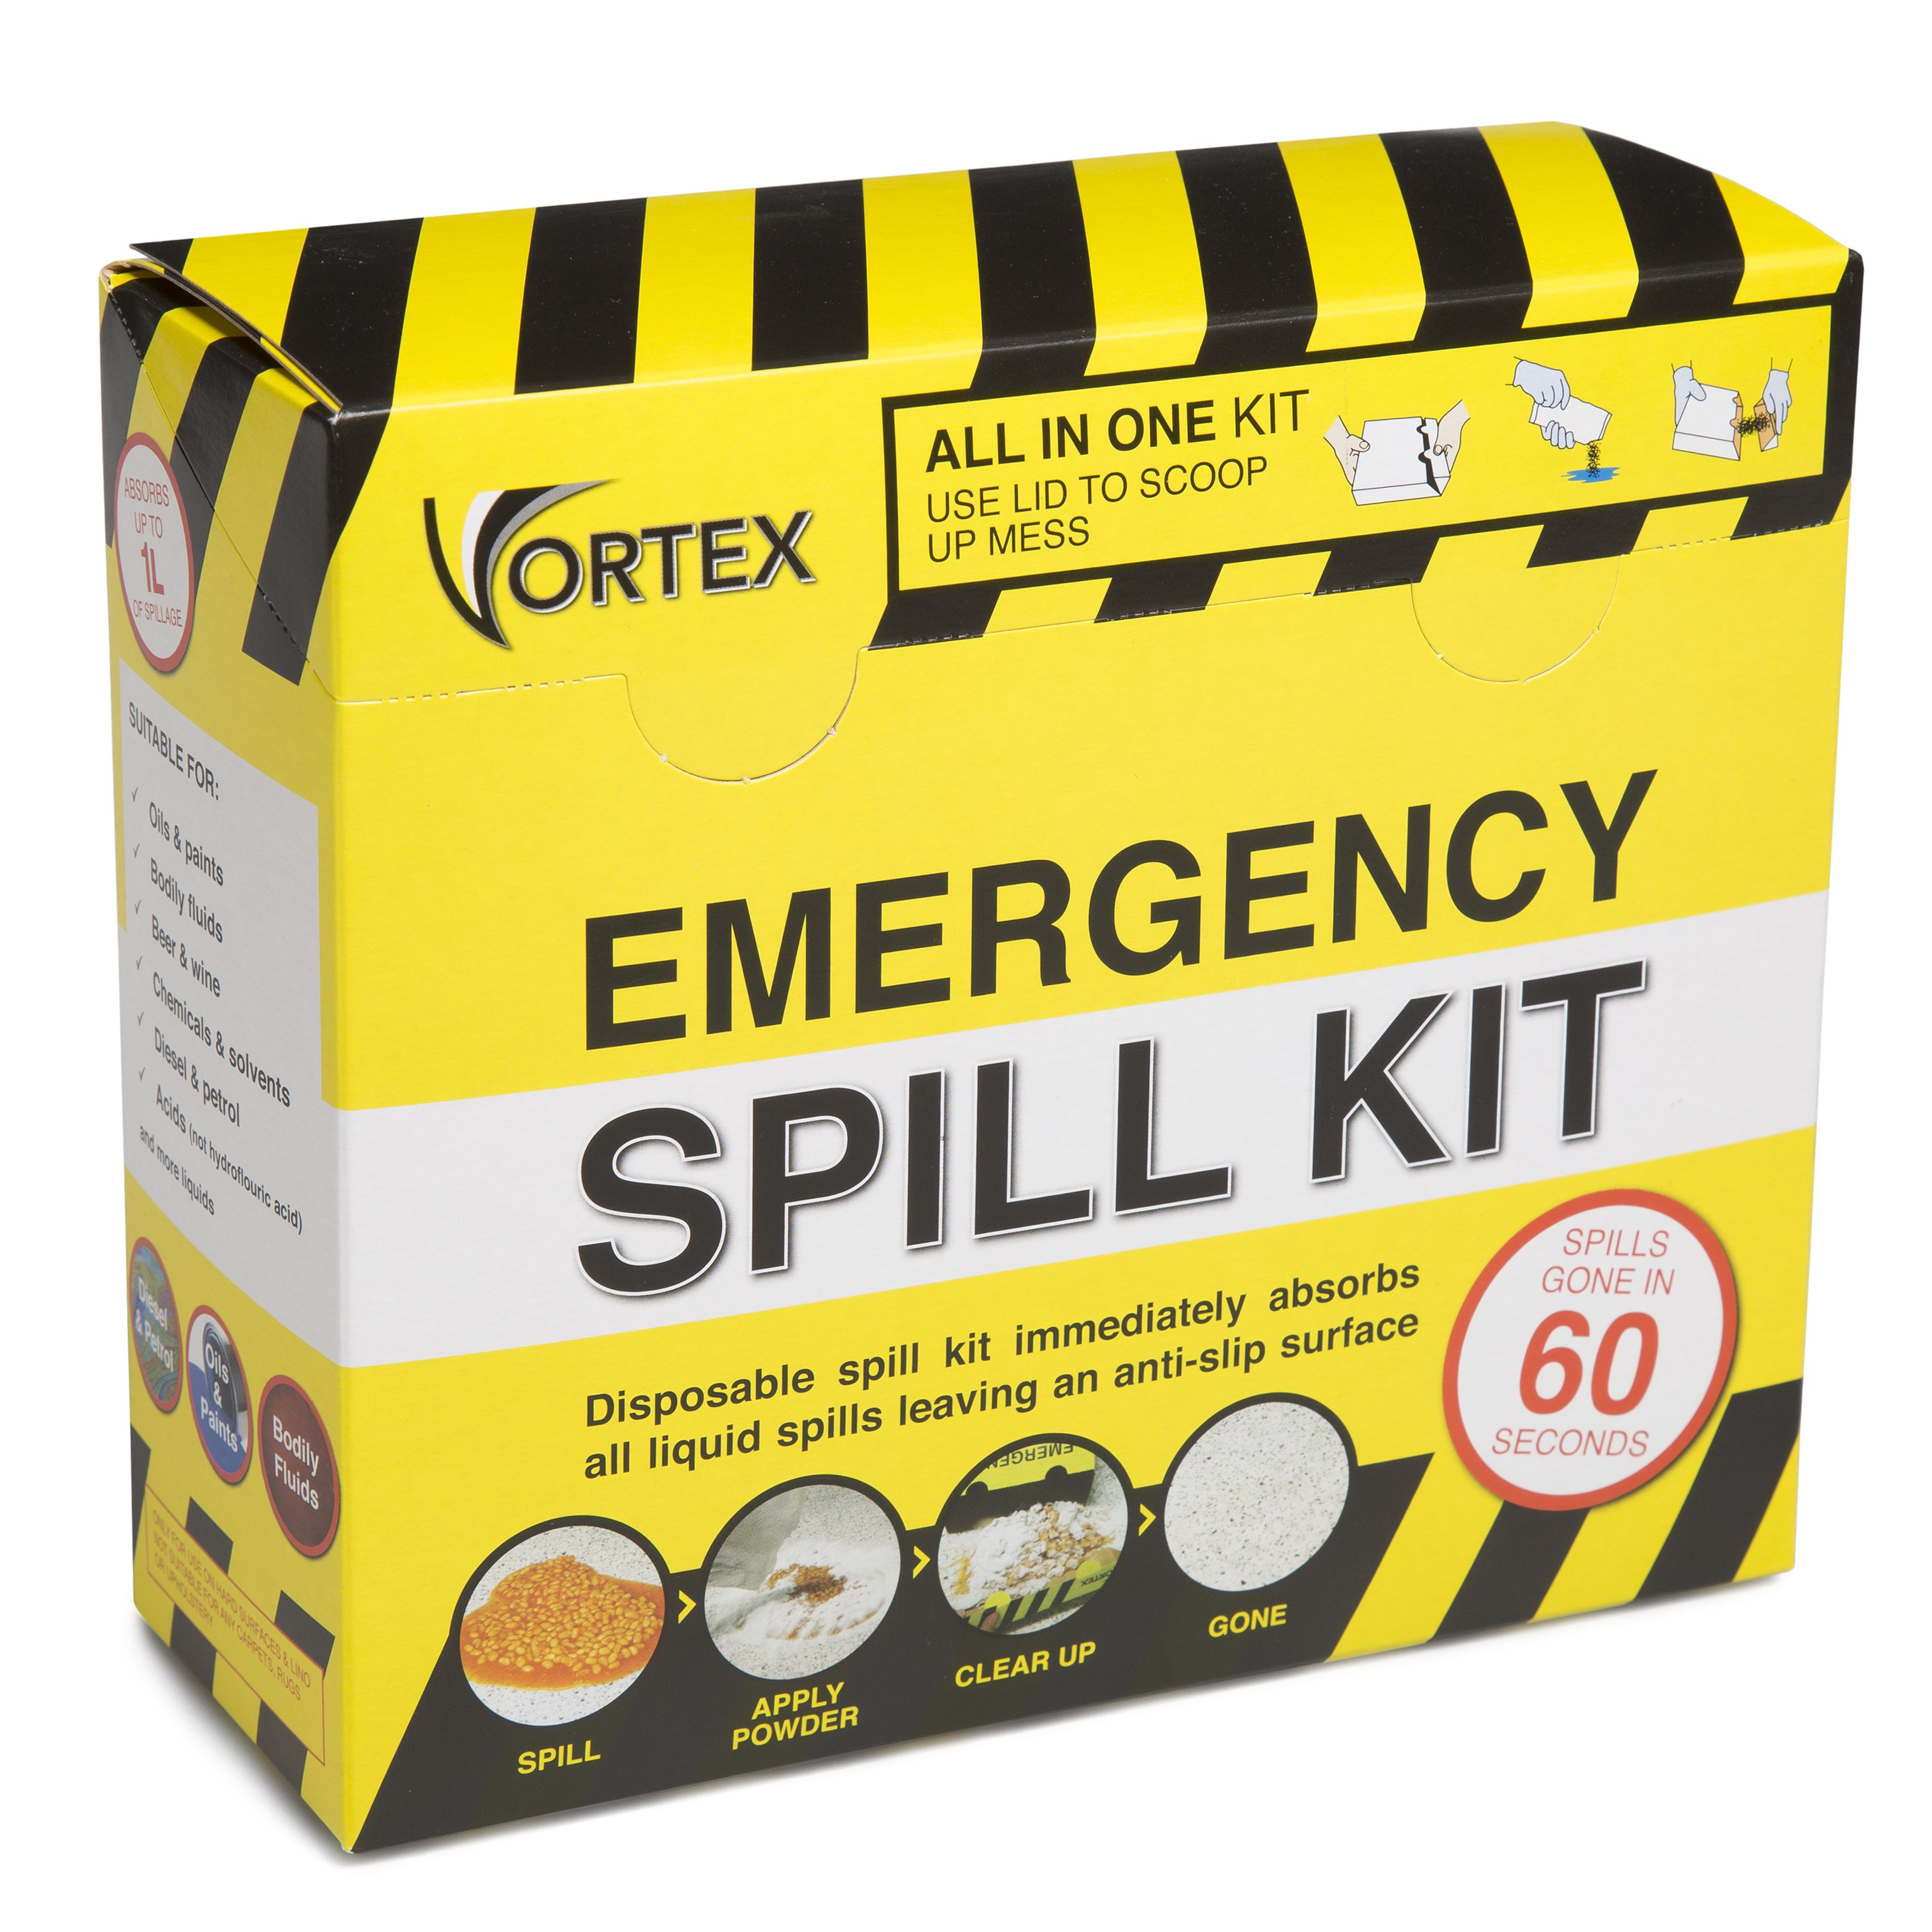 Vortex Emergency Chemical Spill Kit Departments Diy At B Amp Q